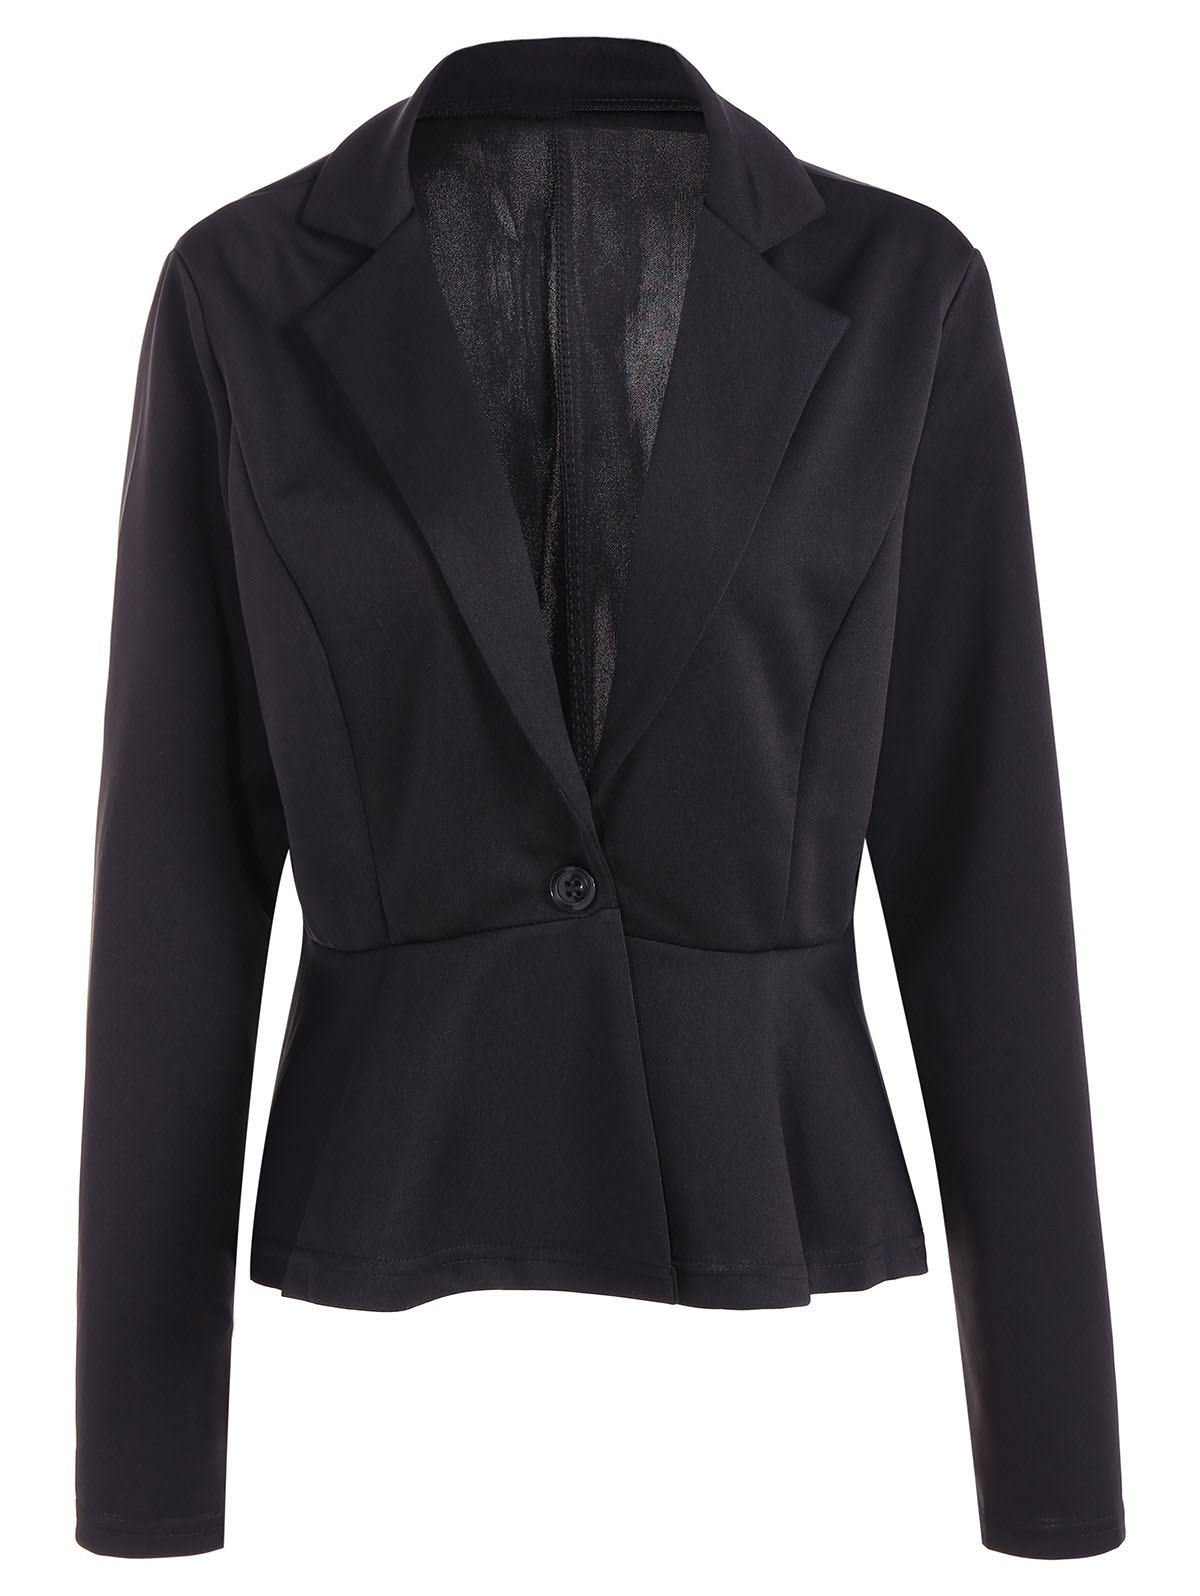 Fitted One Button Jacket Peplum Blazer - BLACK L